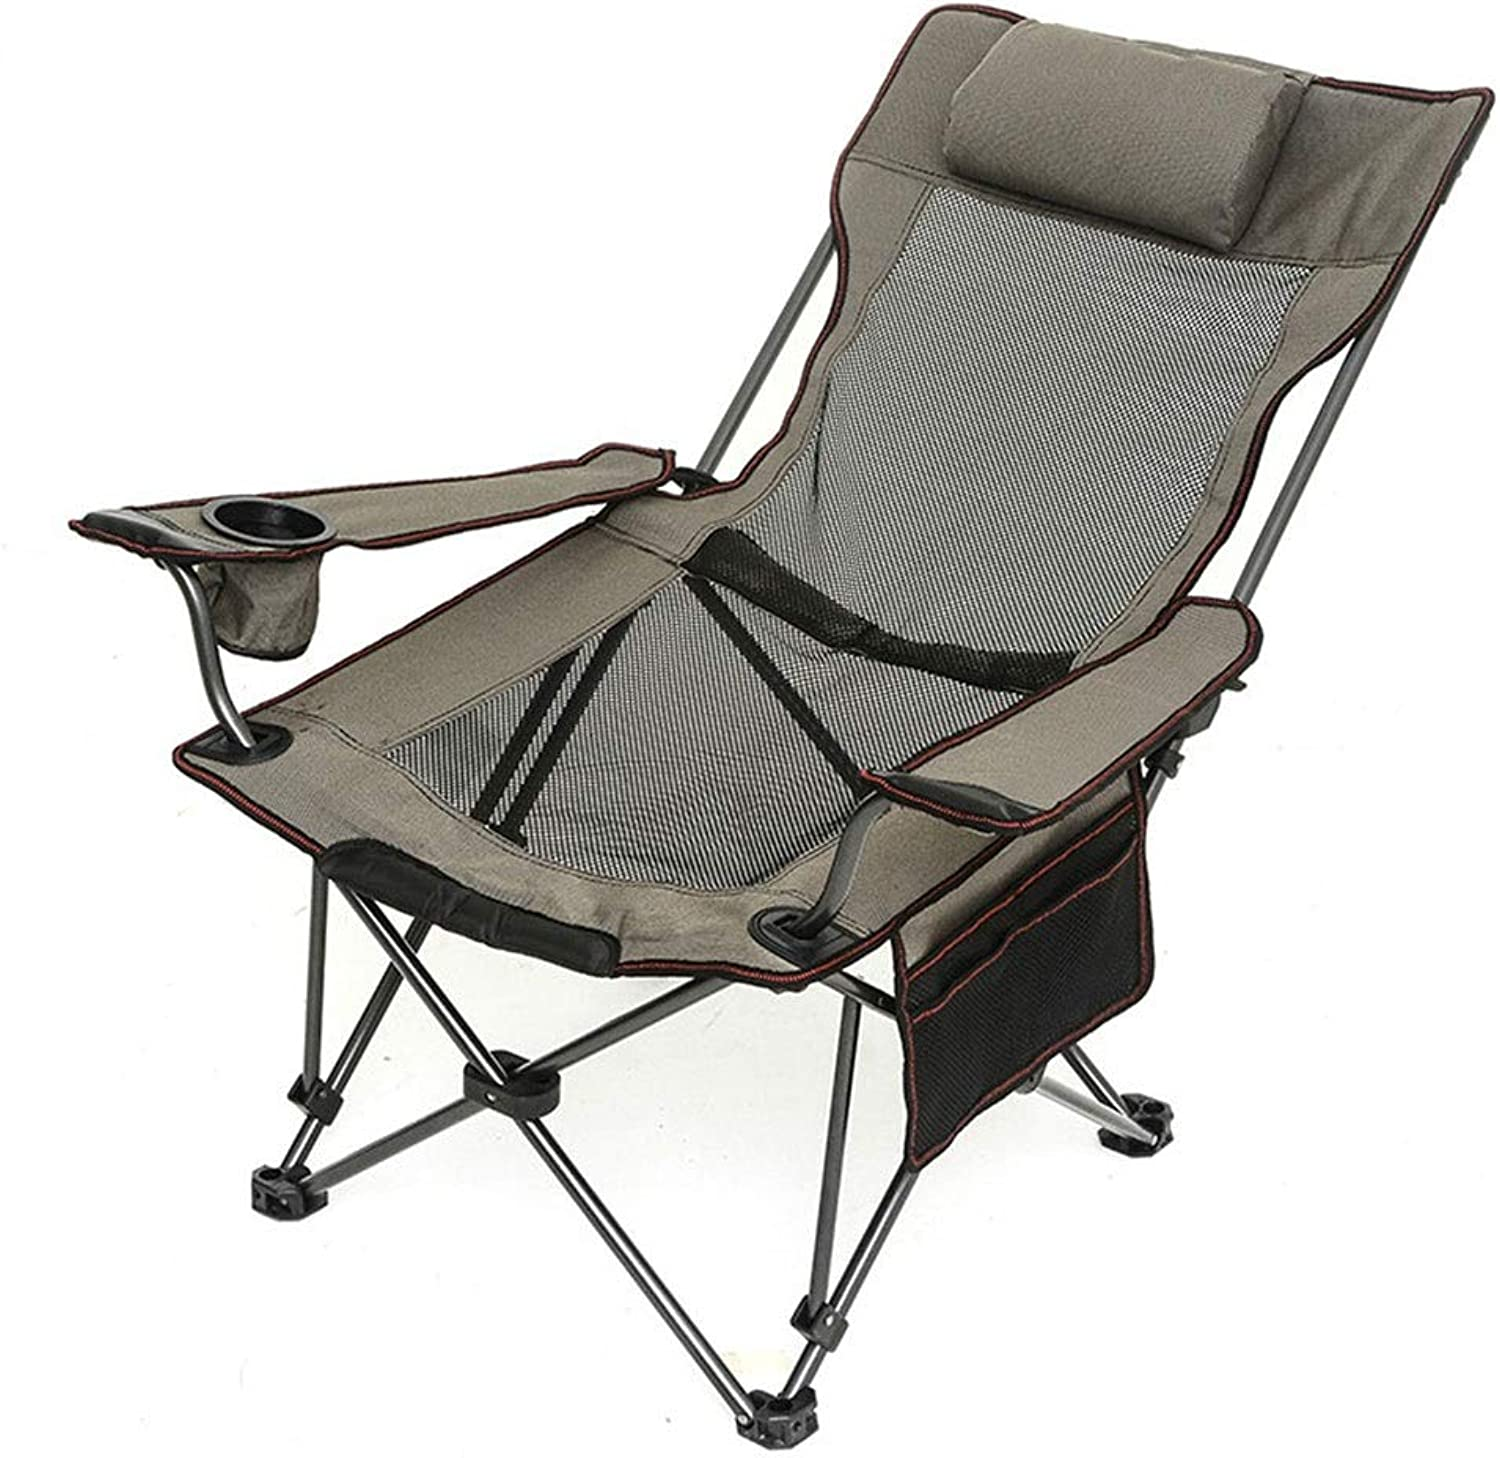 ZK Camping Chair Mesh High Back Ergonomic with Cup Holder Armrest Pocket Headrest Breathable Folding Portable, Adjustable, Supports 330 Lbs, Collapsible Lounge Chair, Recliner, Folding Stool